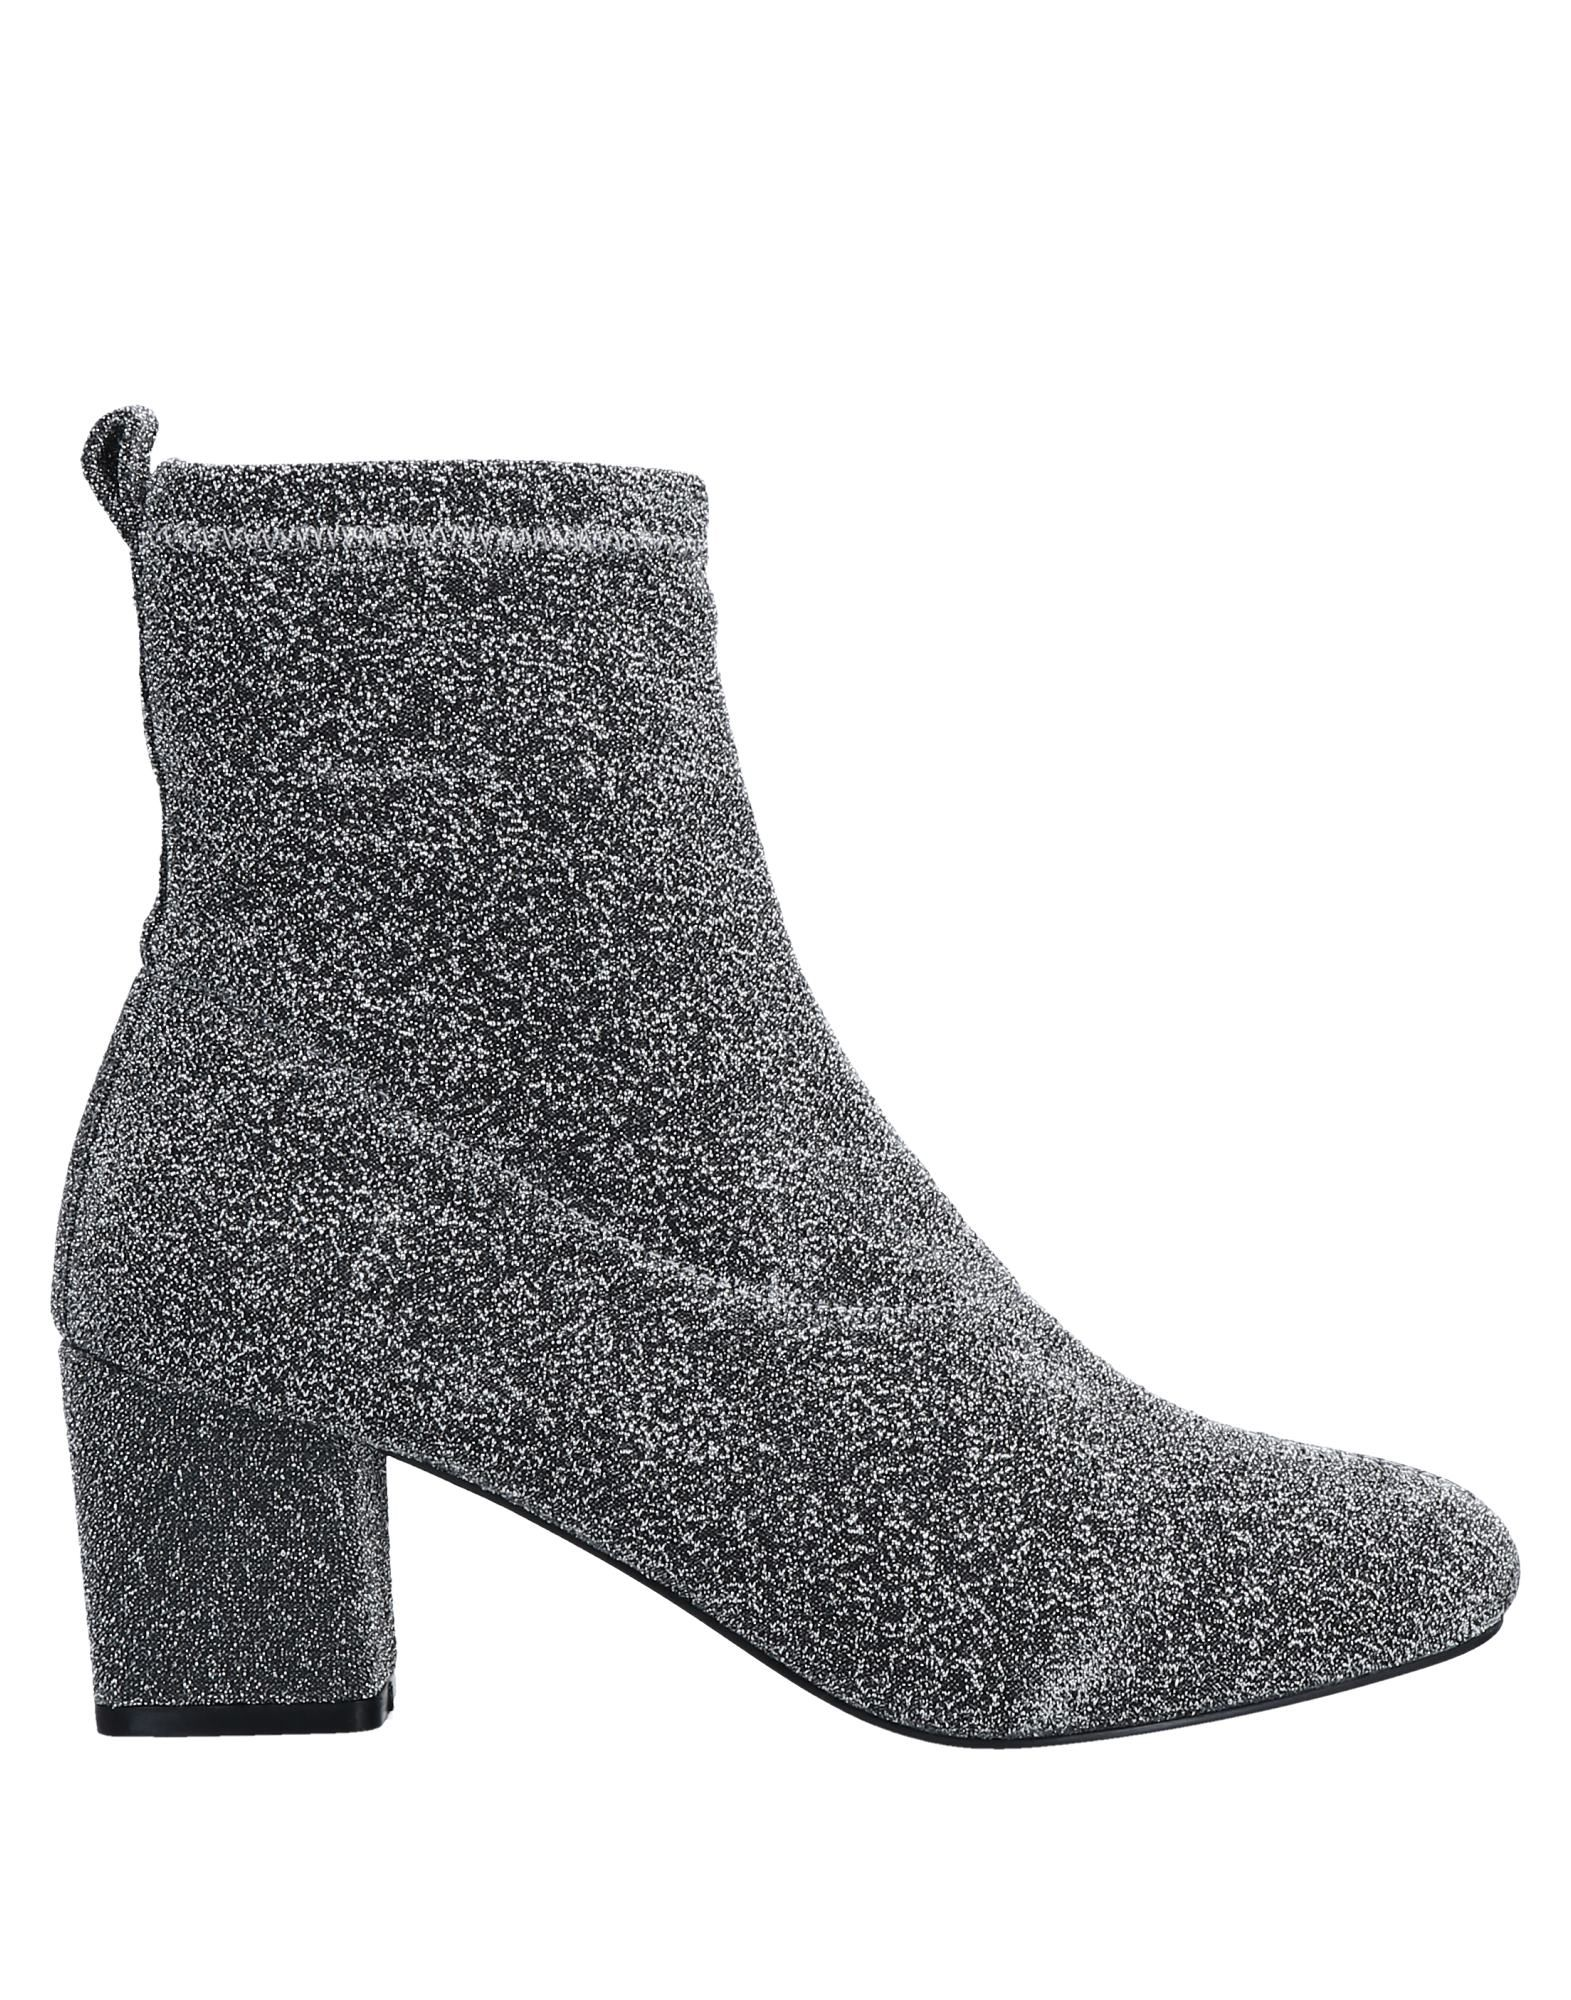 Pieces Ankle Boot Boot Ankle - Women Pieces Ankle Boots online on  Australia - 11581906RQ 786602